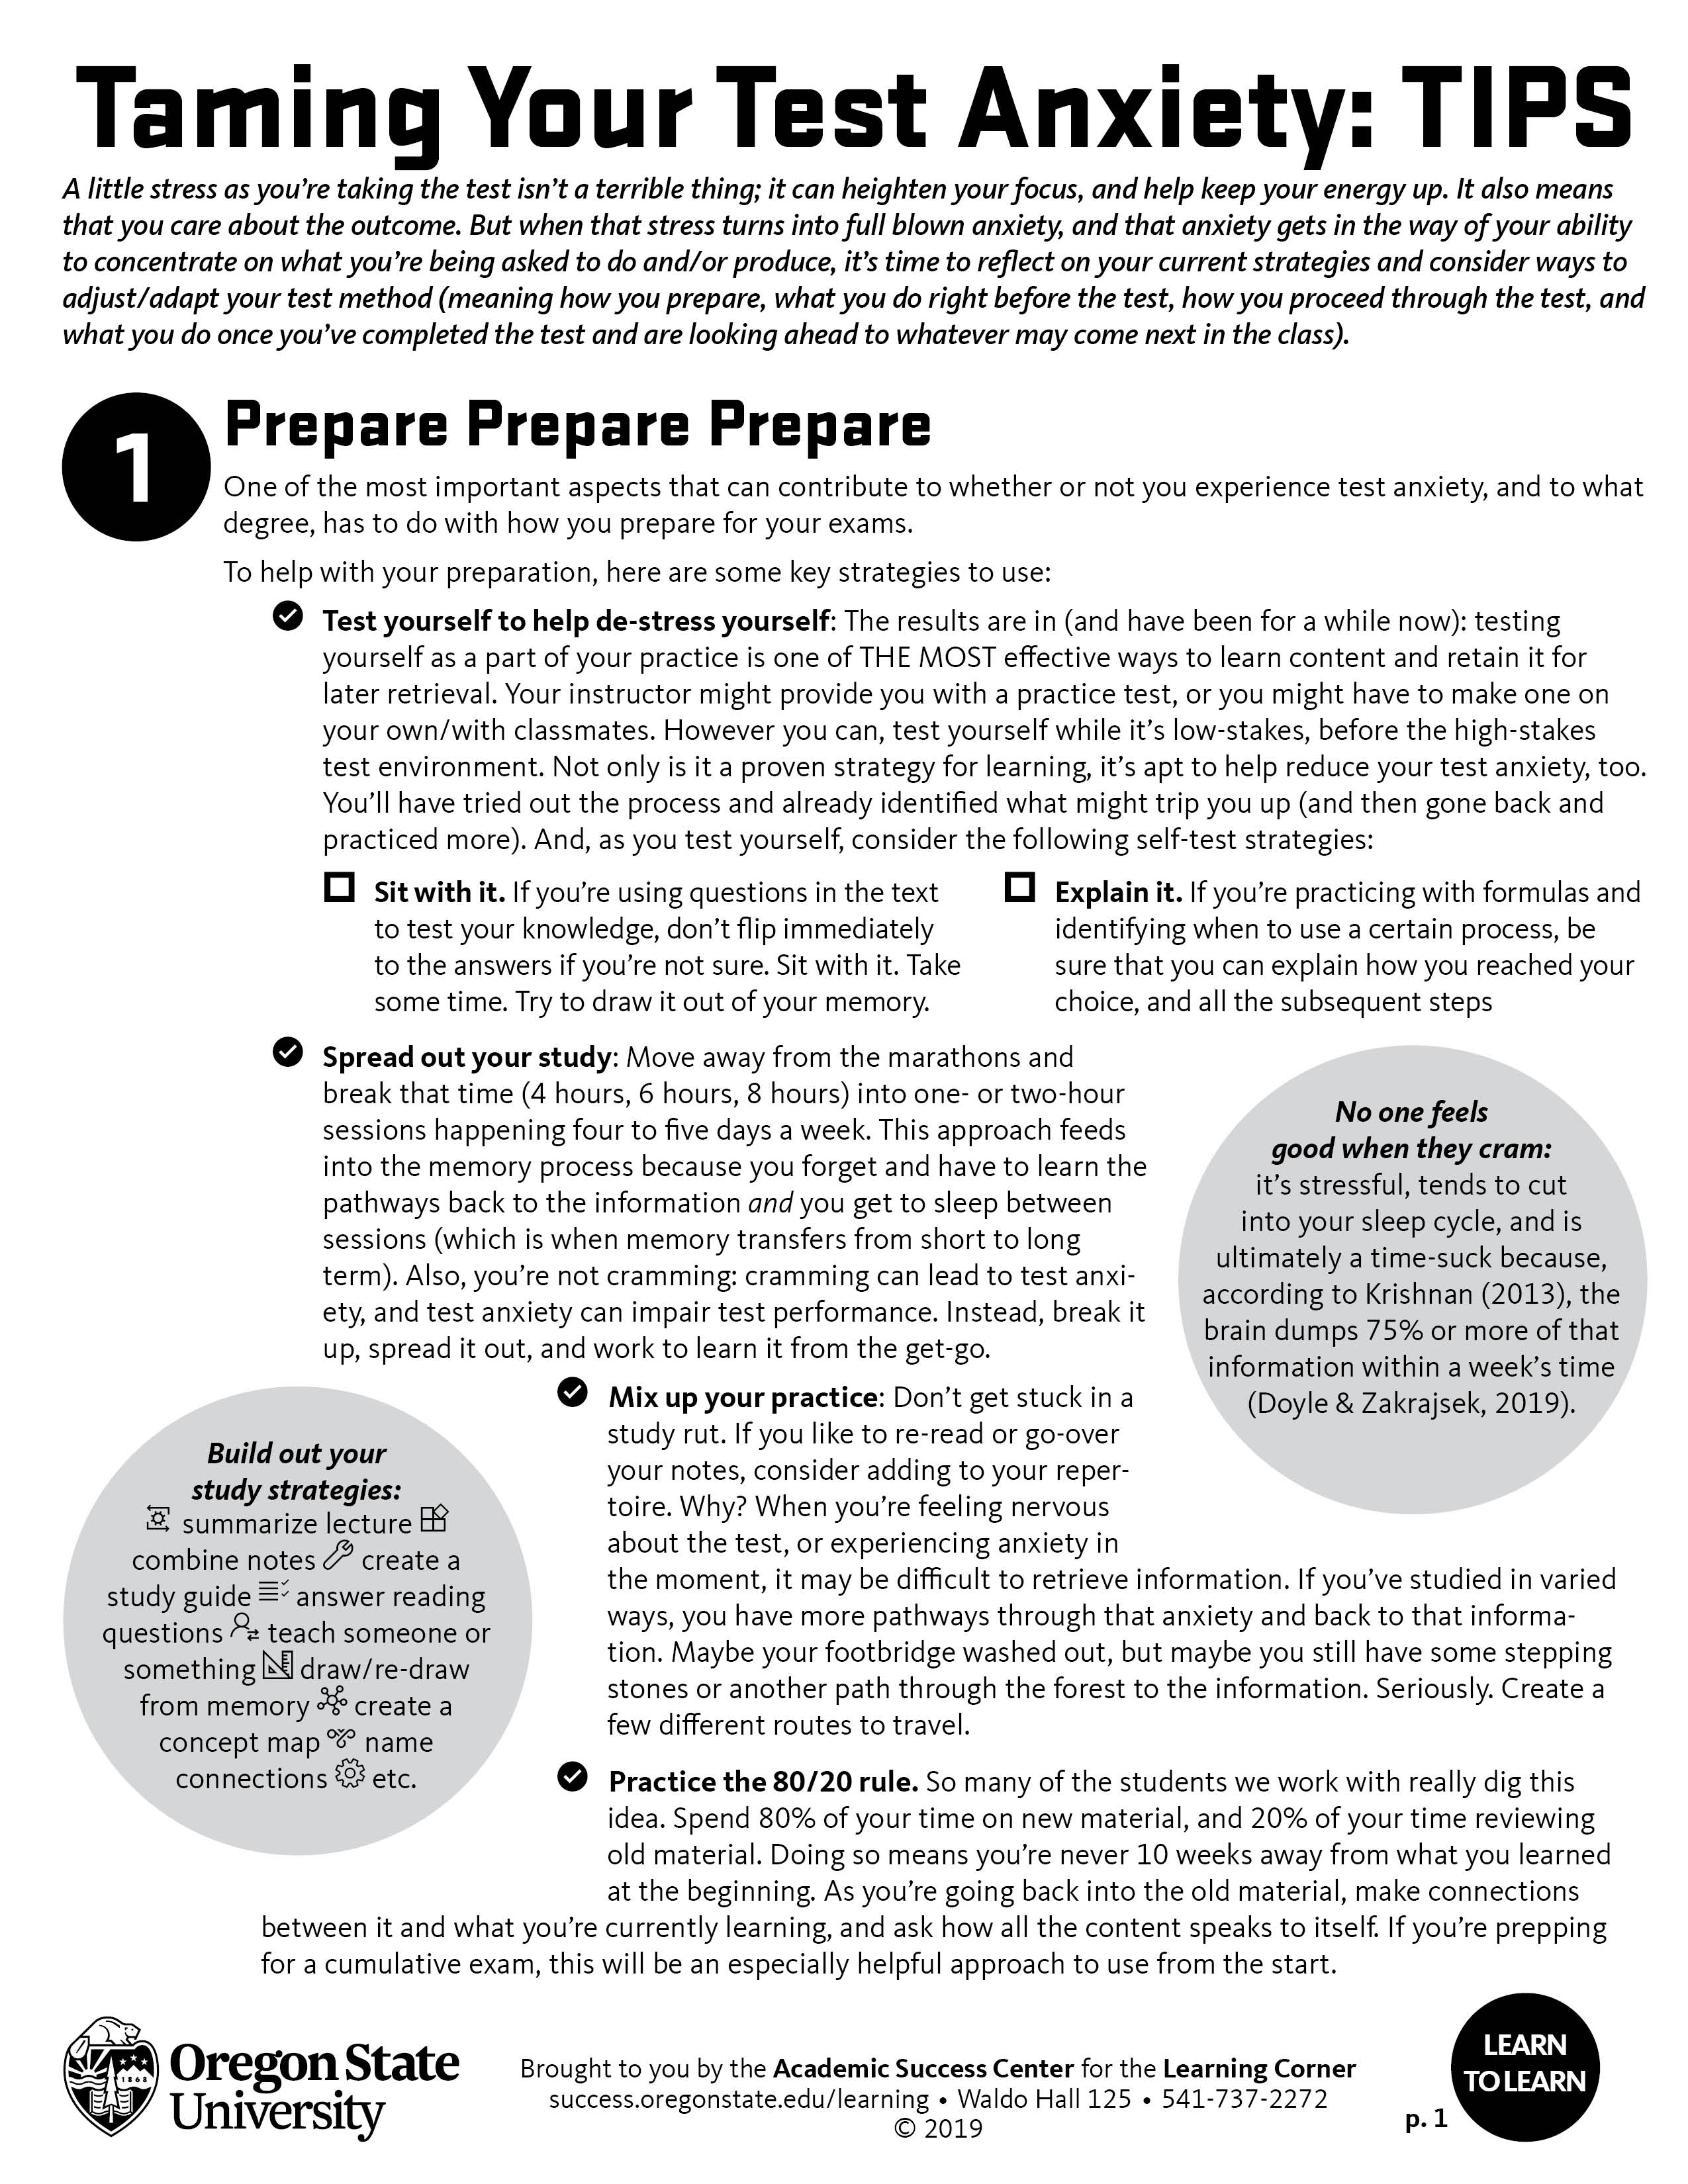 Tame your test anxiety: tips handout